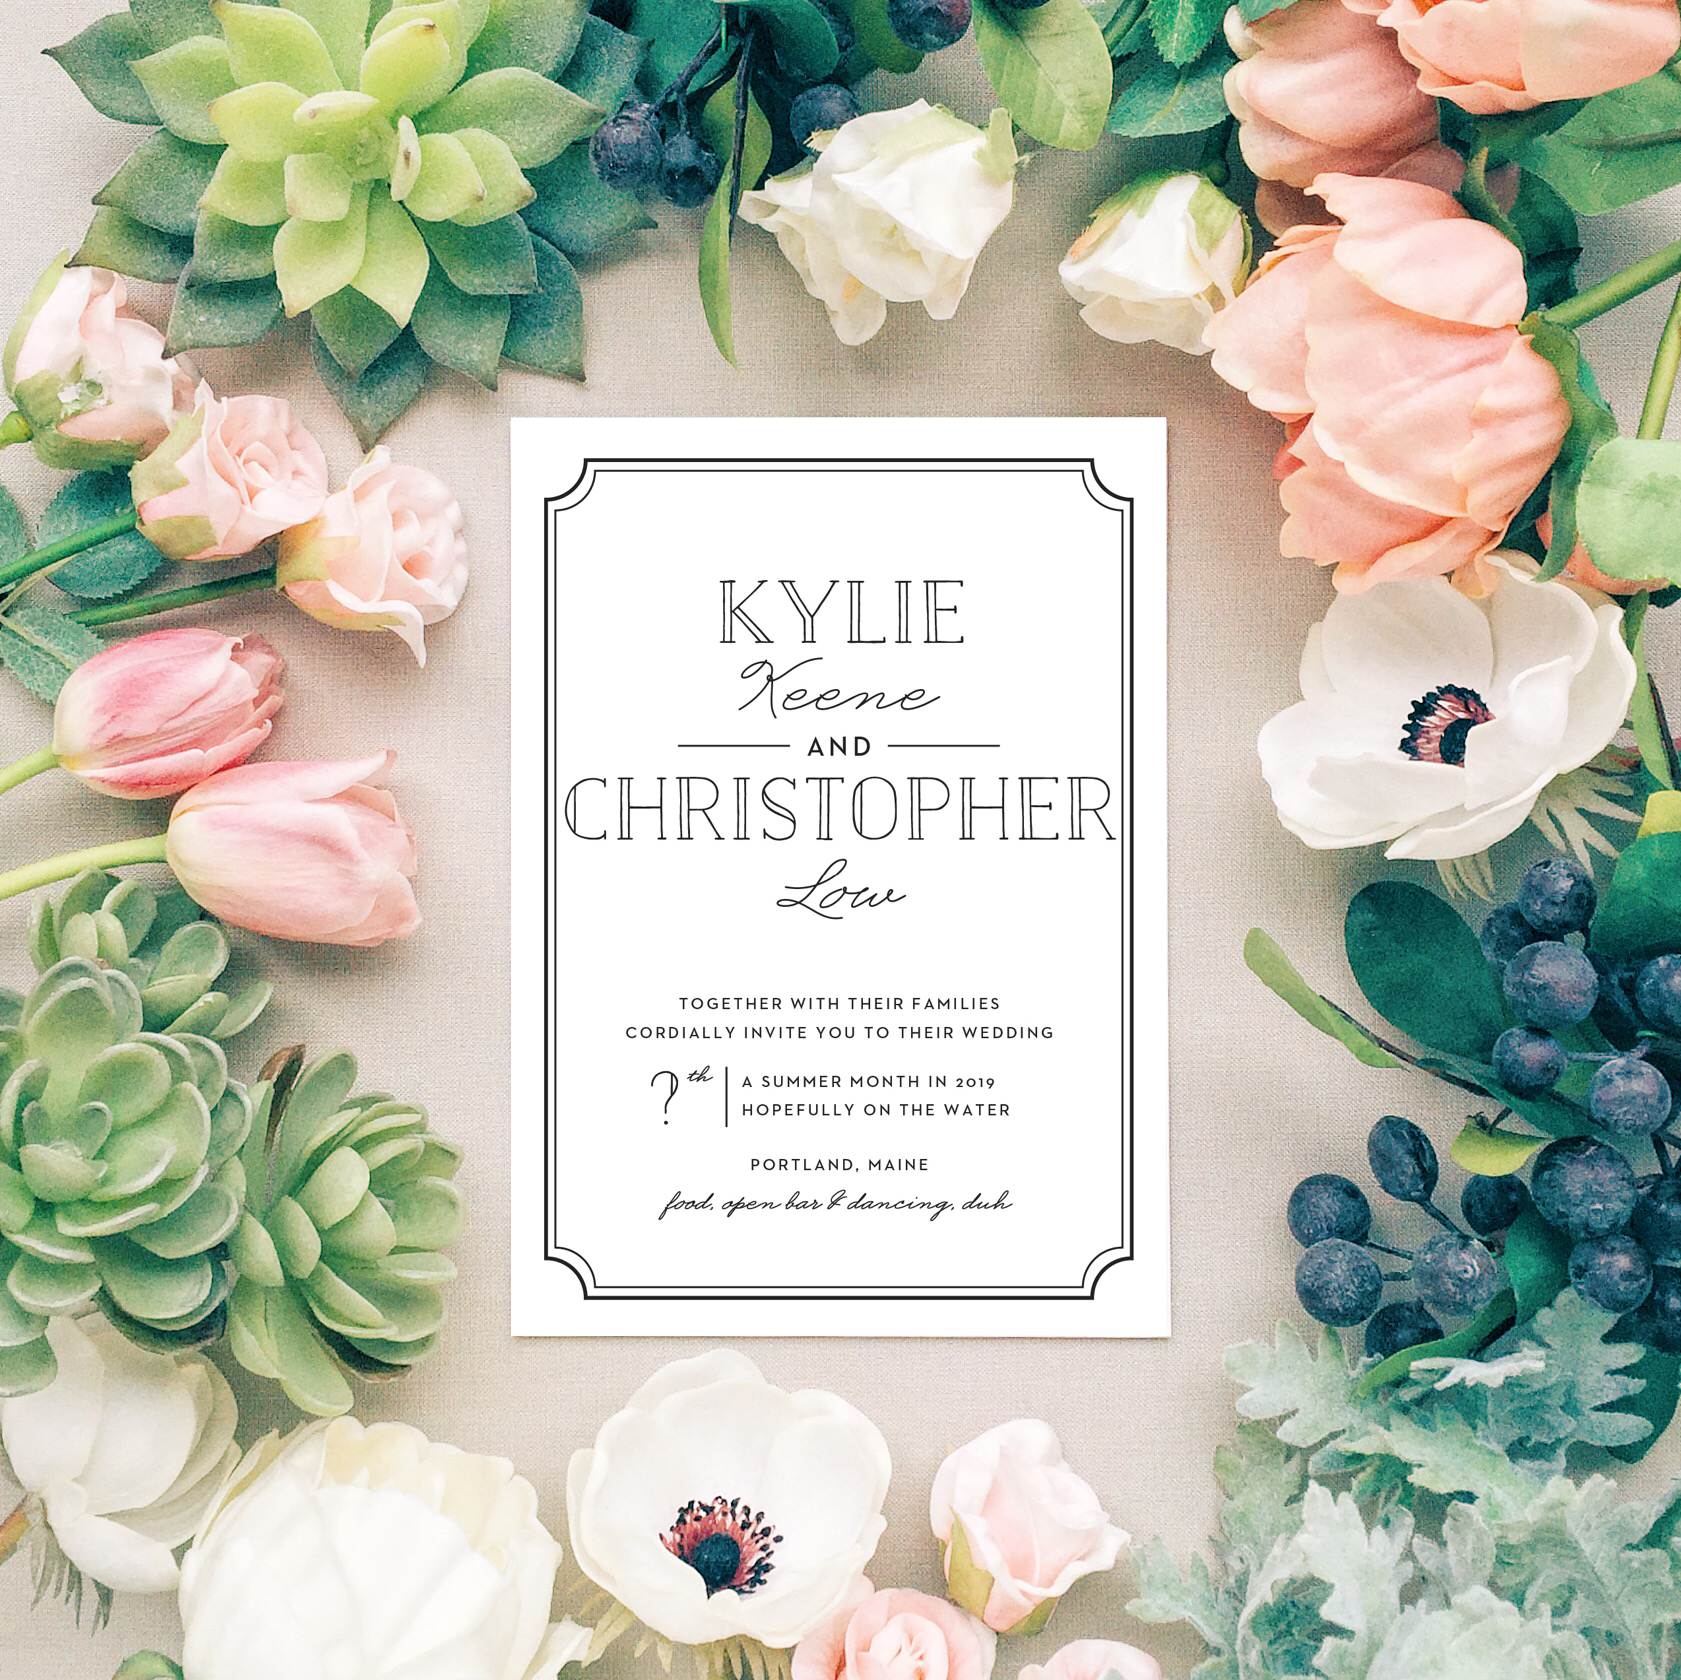 Basic Invite provided some lovely stock images of their invites and I had some fun with their online wedding invitation creator to customize the look. This is the  Type Frame Portrait  design.